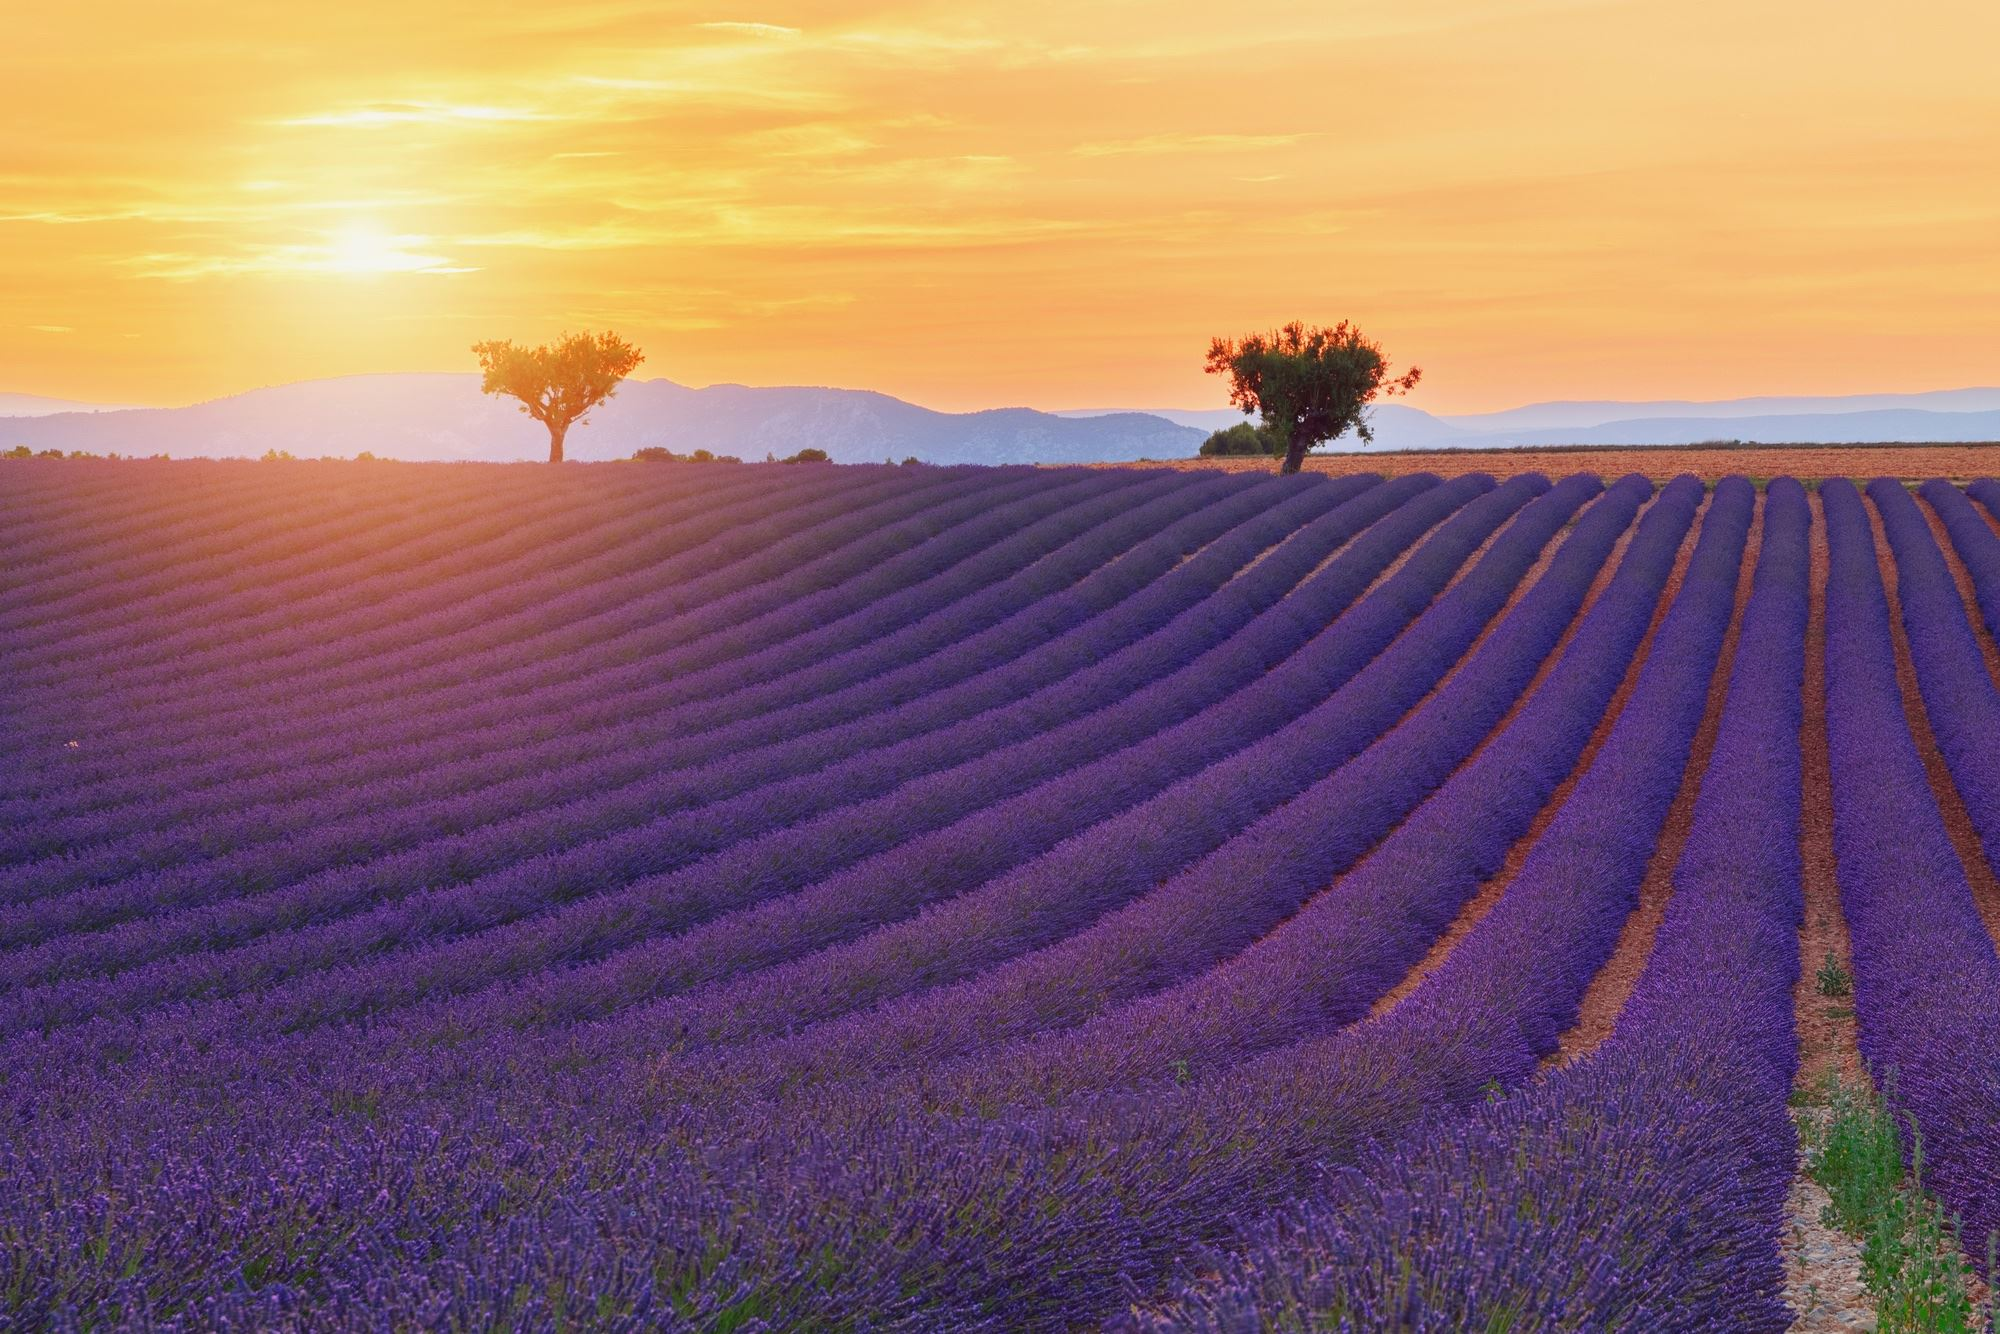 PHOTOGRAPHIC TOUR OF LAVENDER IN VALENSOLE